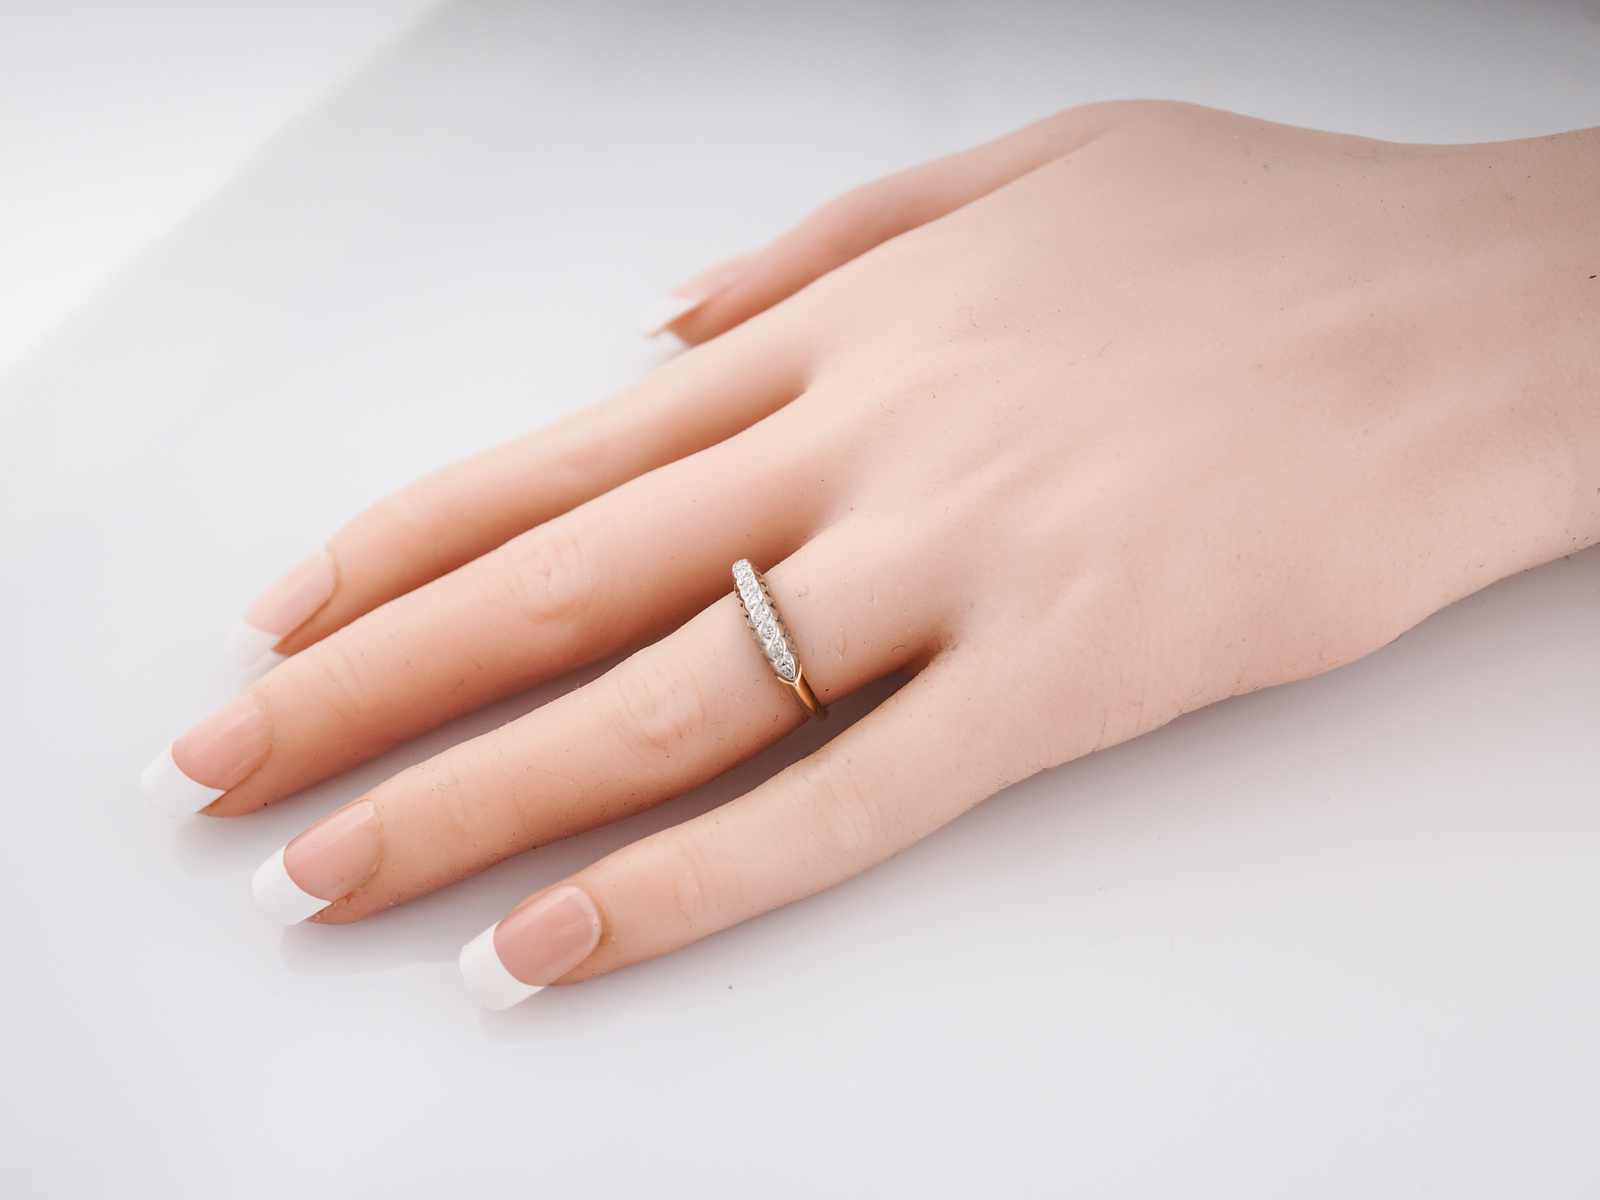 Vintage Wedding Band Retro .03 Single Cut in 14k White and Yellow Gold